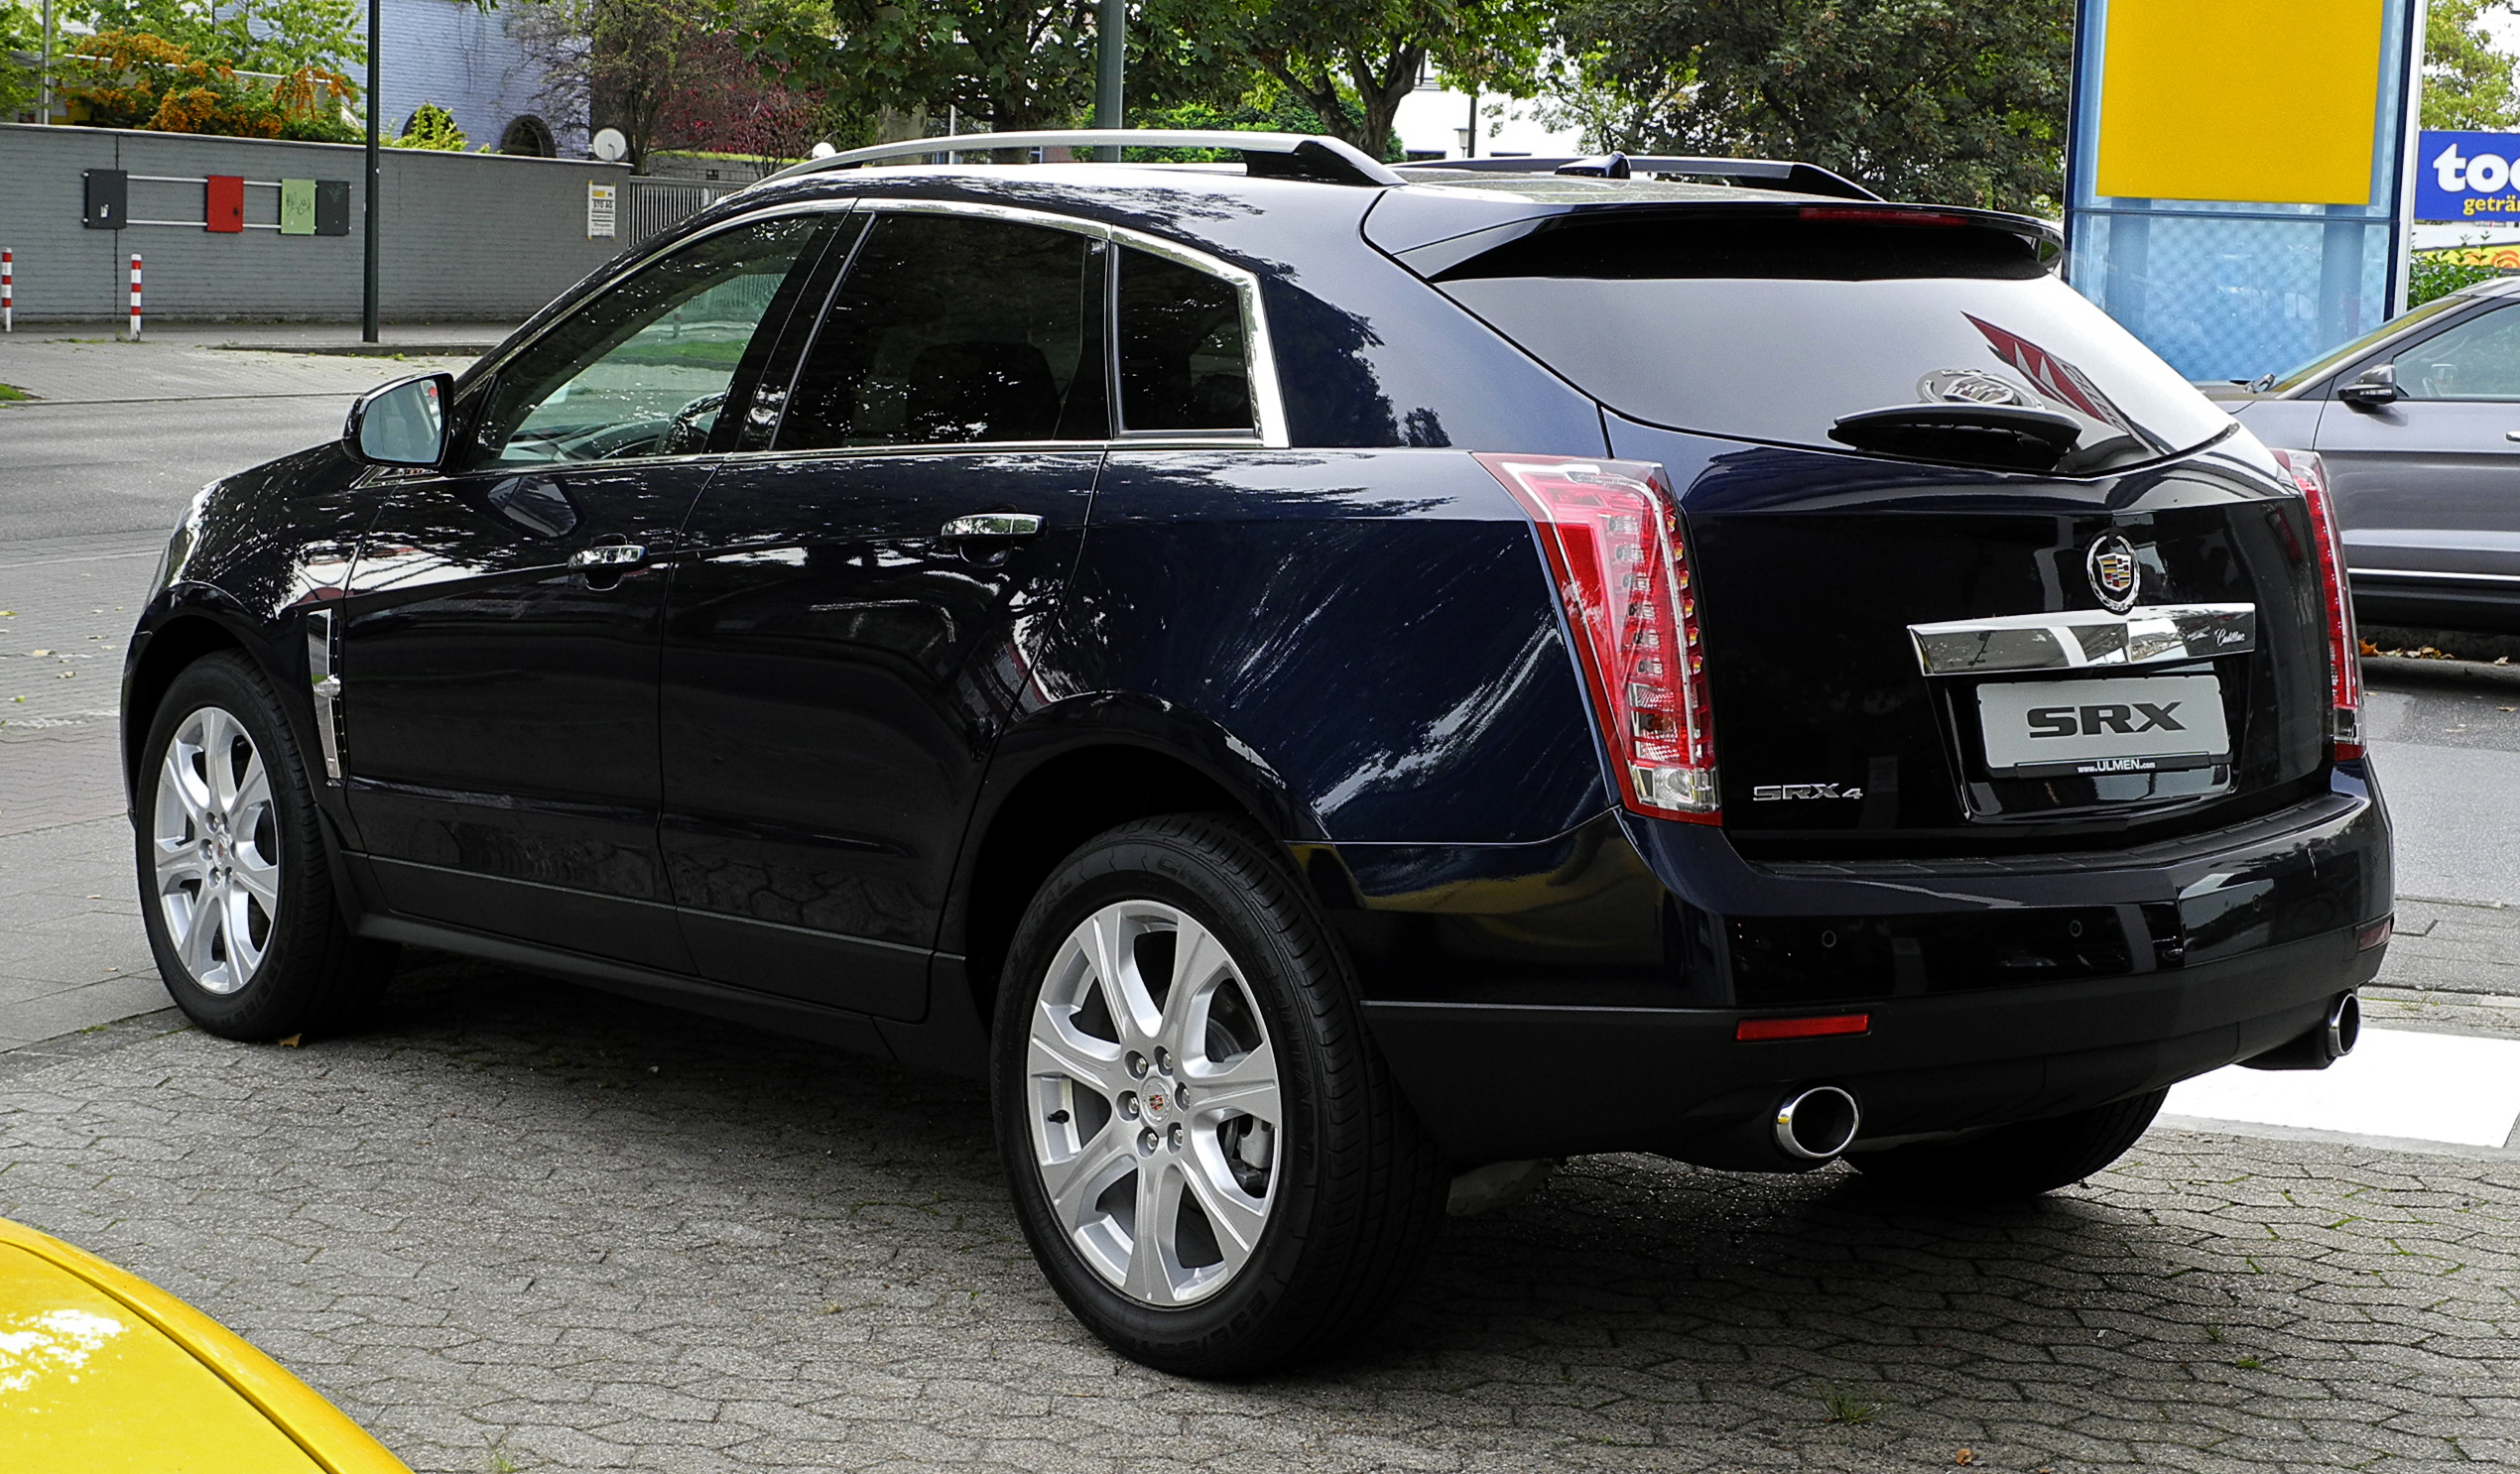 gaslamp buys in cars to she with the a cadillac srx taylor swift san style arriving diego